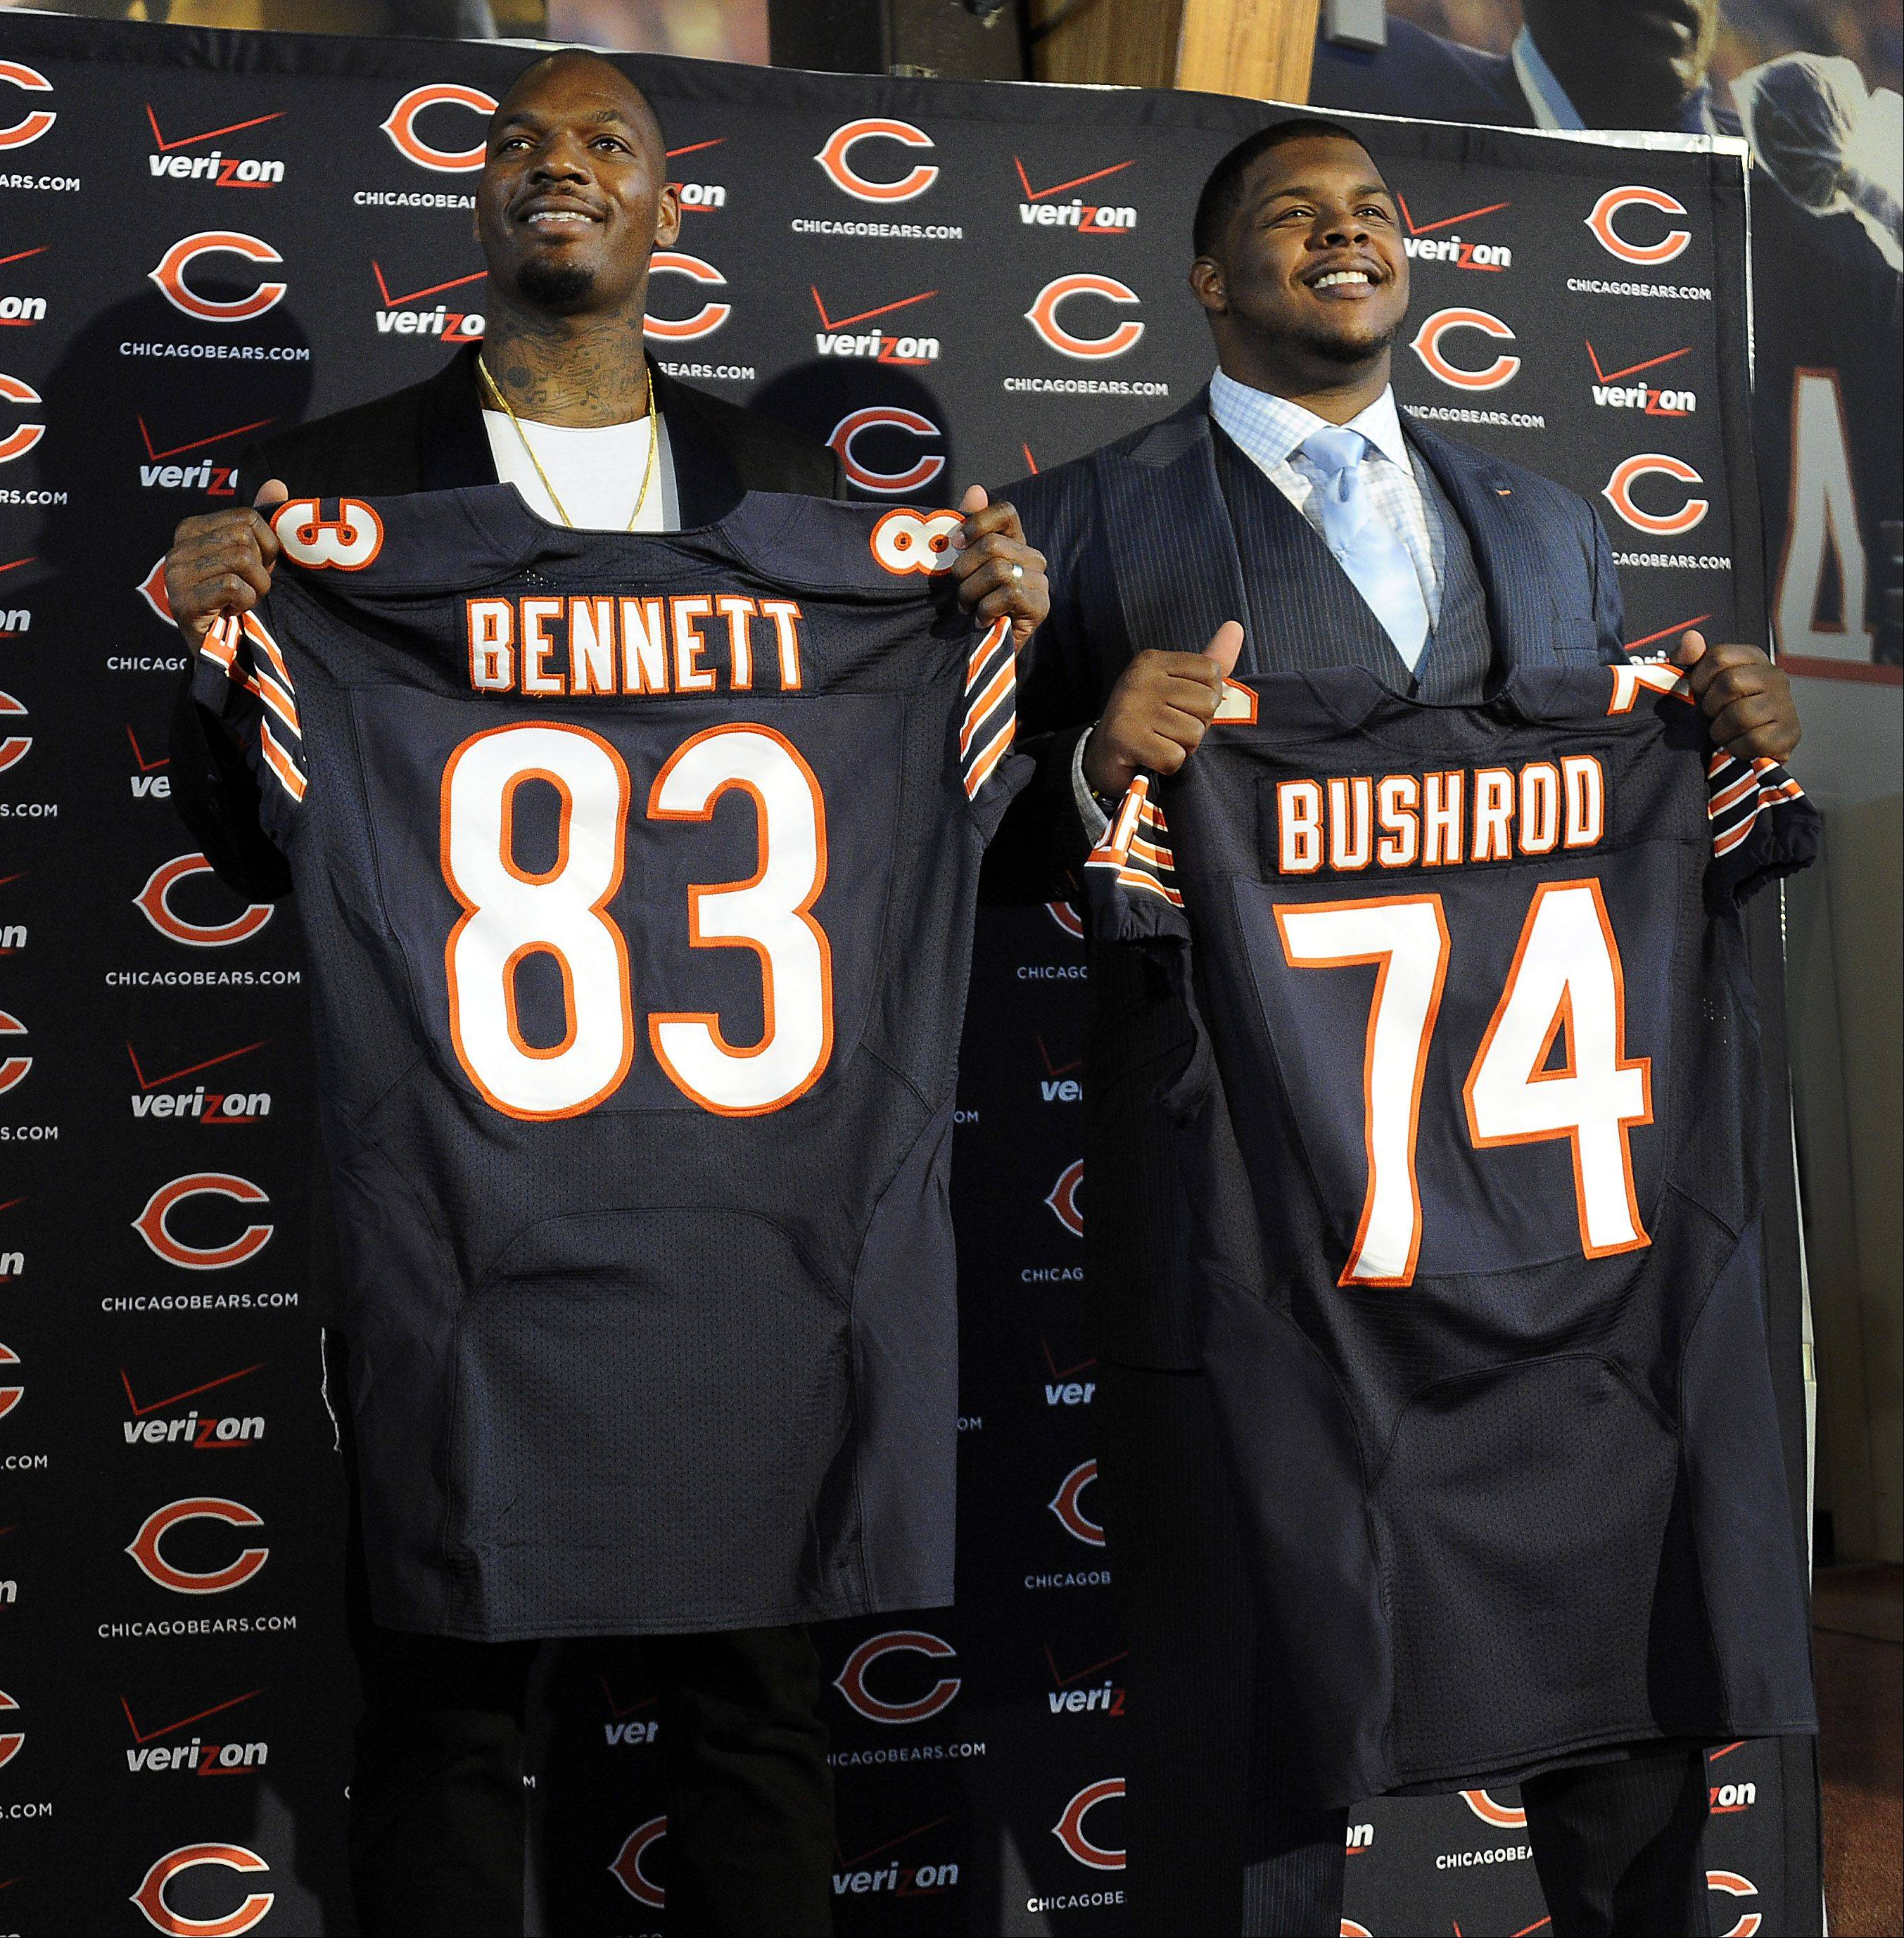 Tight end Martellus Bennett (left) and offensive tackle Jermon Bushrod are introduced at the Walter Payton Center in Lake Forest on Wednesday.